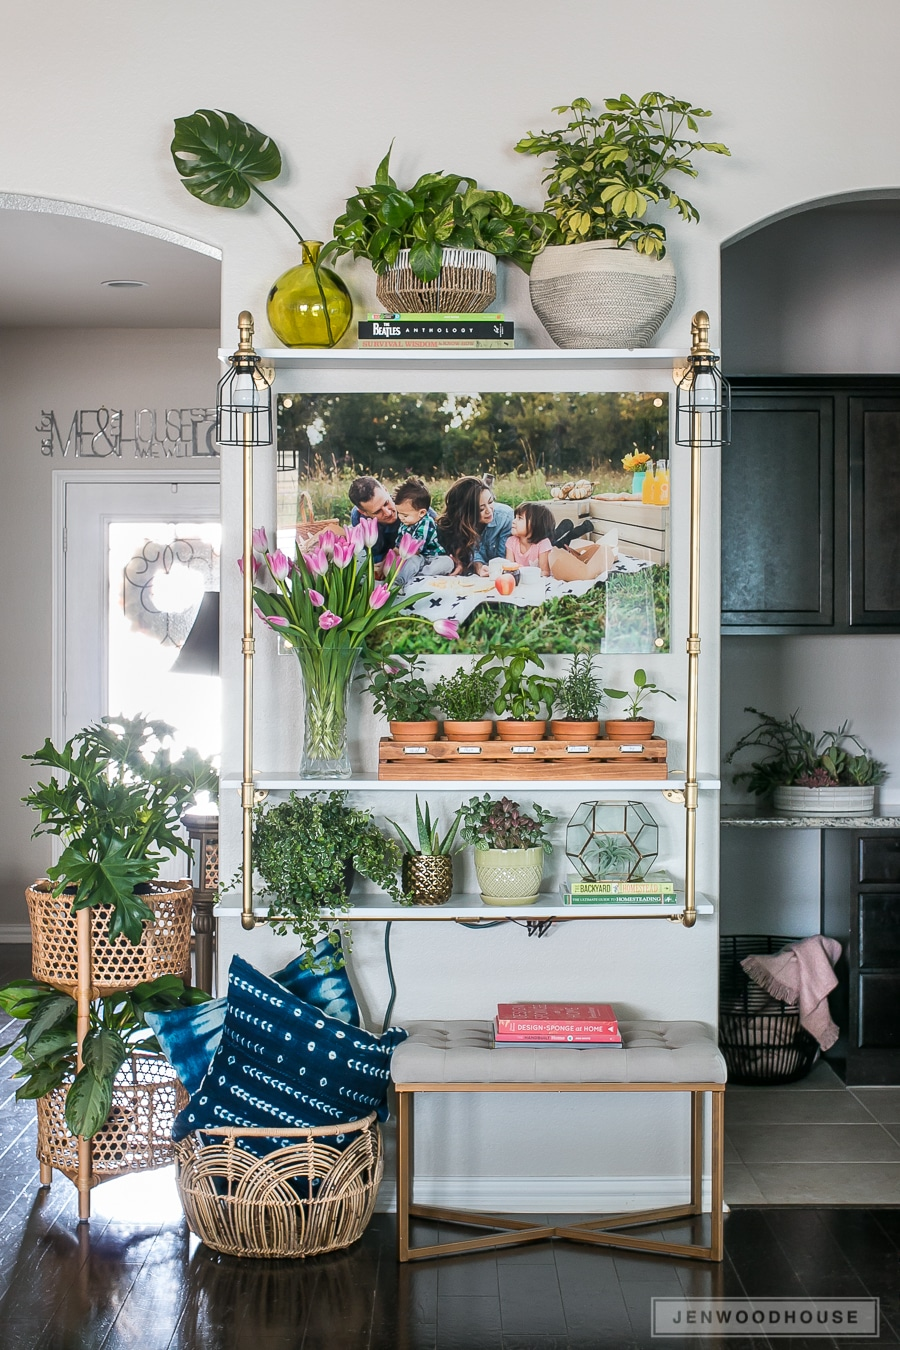 How to style your shelf for Spring